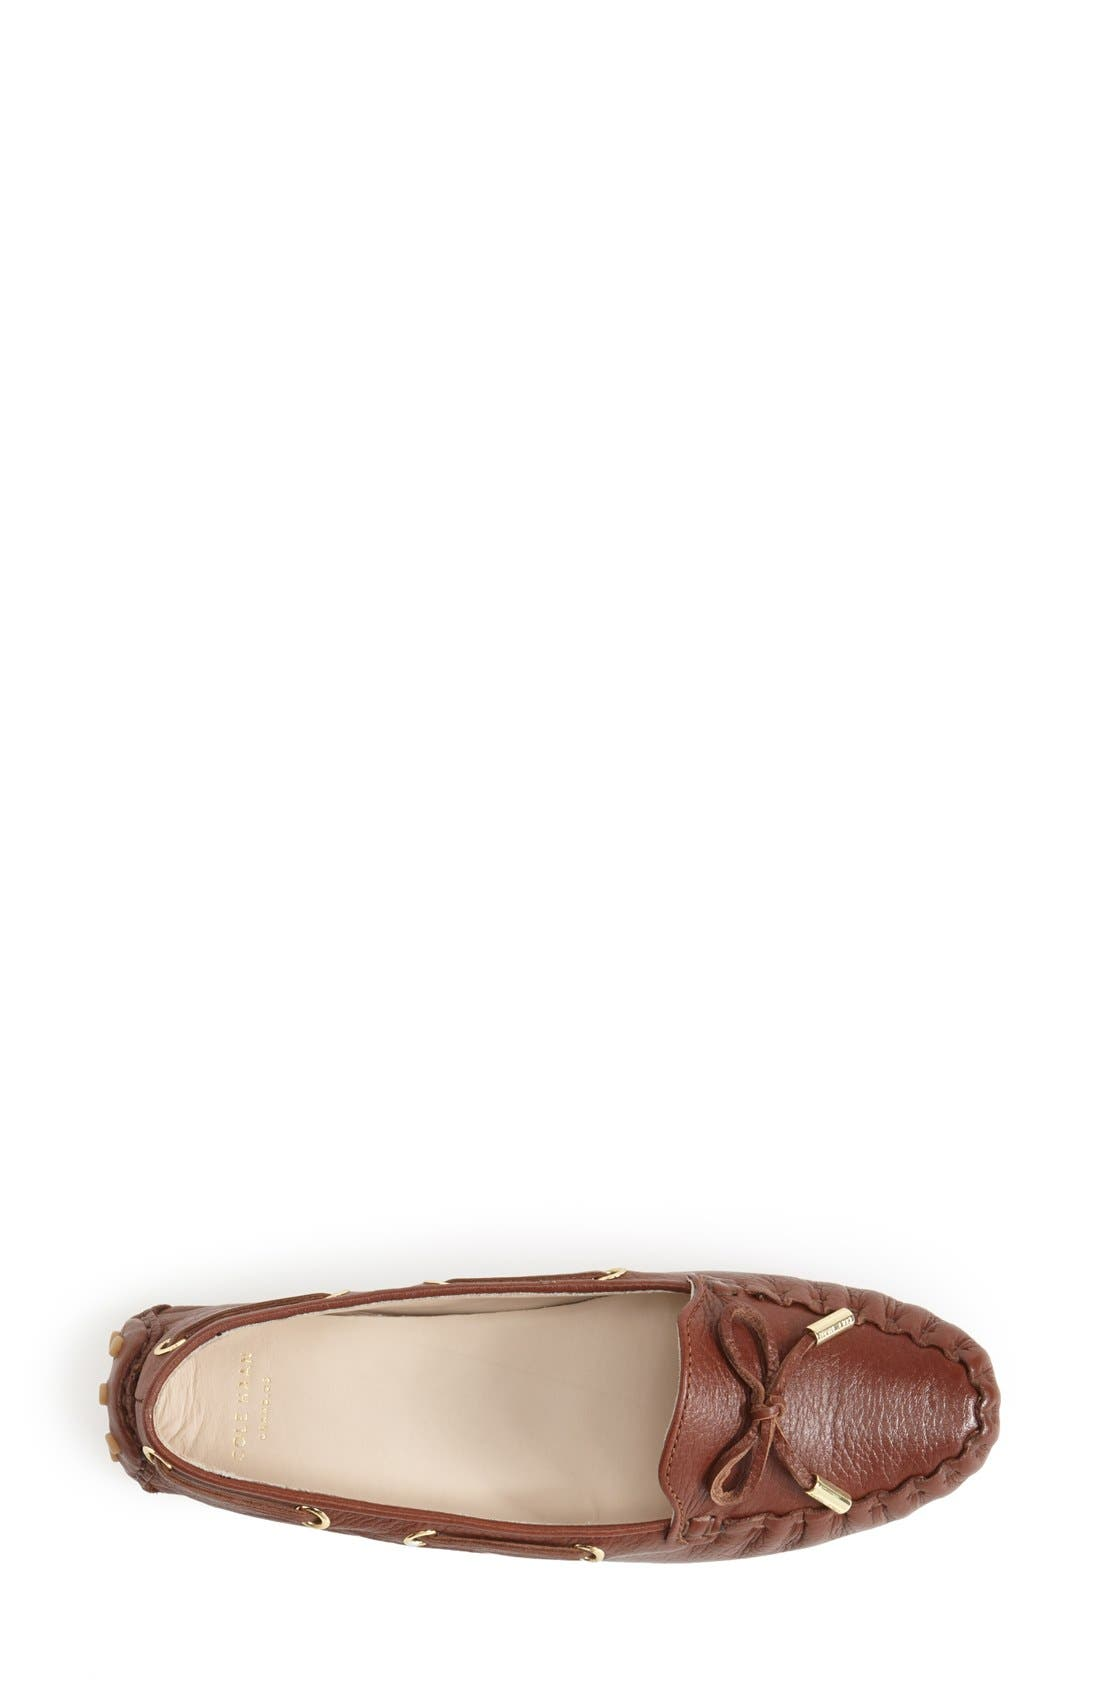 'Cary' Leather Driving Flat,                             Alternate thumbnail 3, color,                             Woodbury